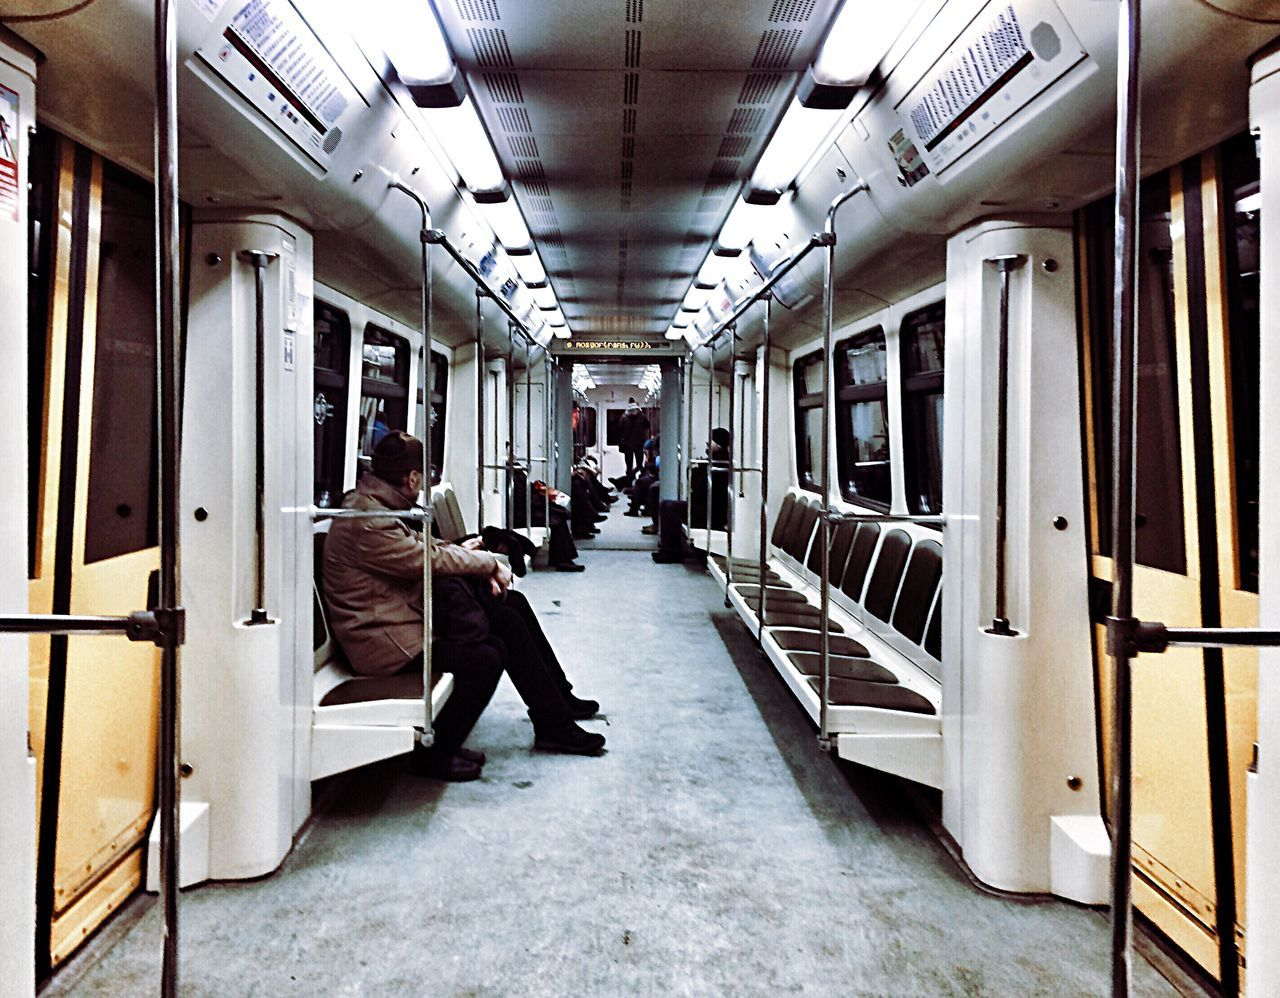 train - vehicle, public transportation, transportation, rail transportation, passenger train, men, mode of transport, real people, vehicle seat, travel, full length, subway train, indoors, sitting, women, one person, day, adult, people